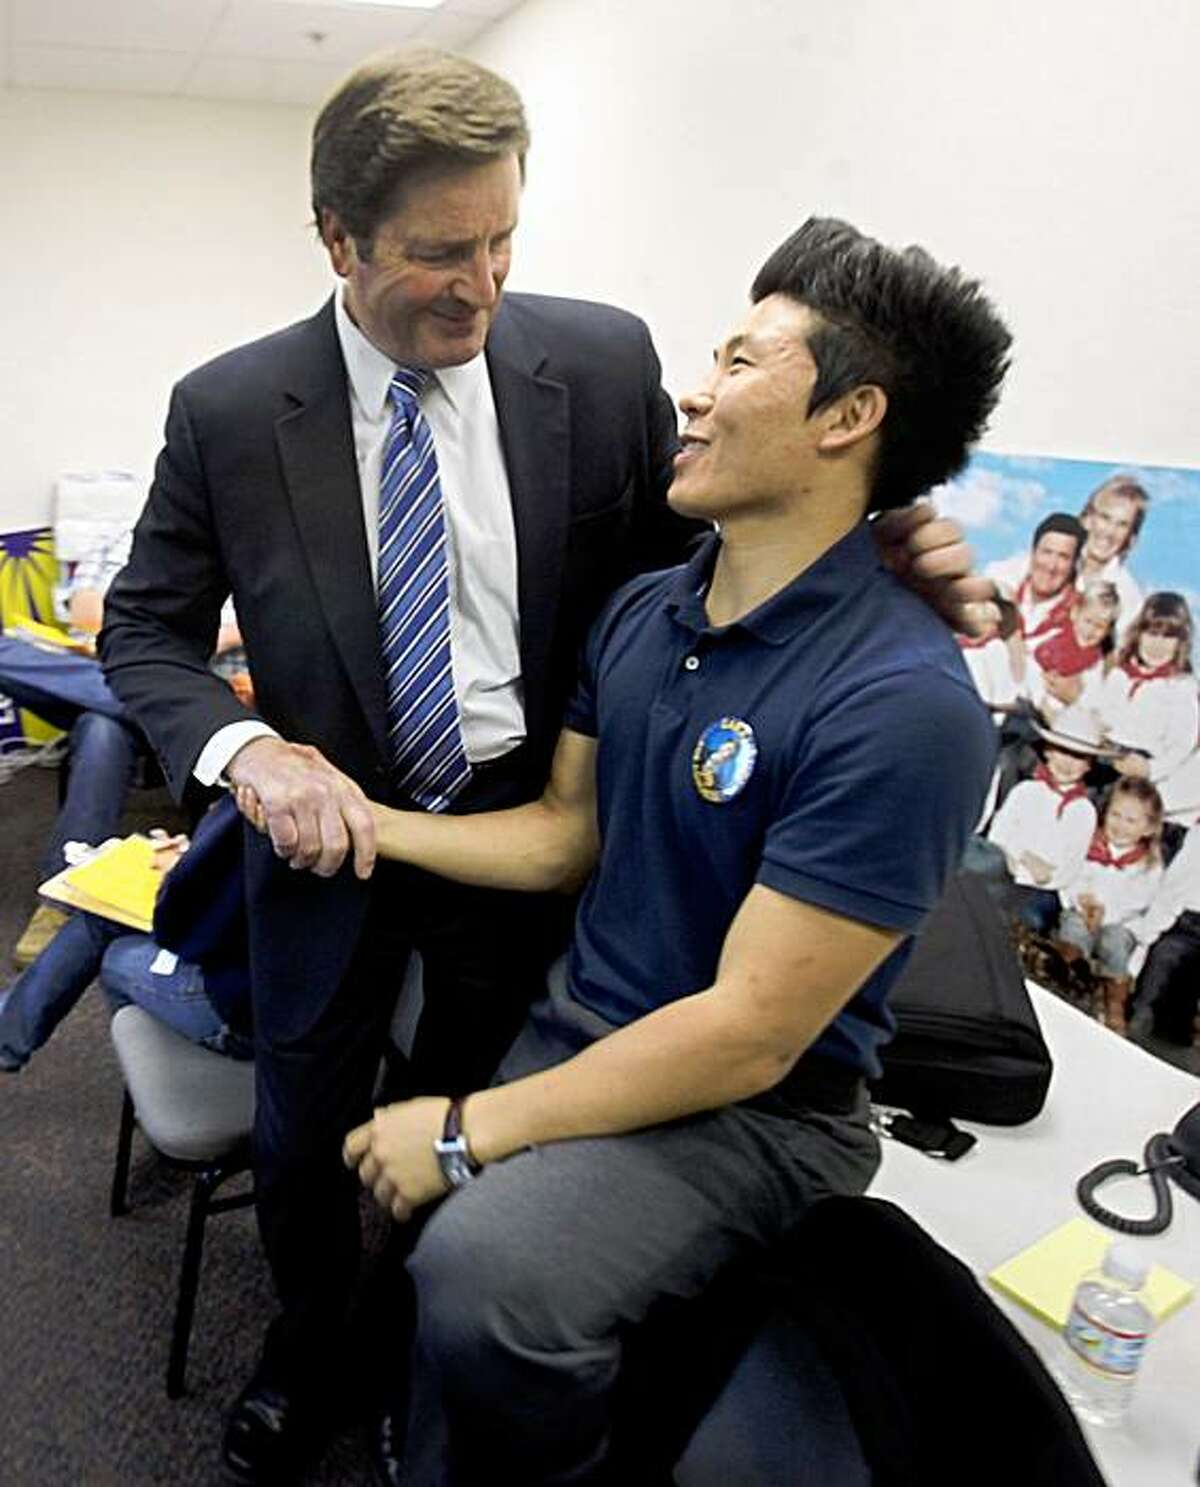 Lt. Gov. John Garamendi, the Democratic candidate for the 10th Congressional District, thanks Andrew Kim, right, his regional campaign director for his work during a visit to his campaign field office in Fairfield,on Tuesday. Garamendi is battling Republican David Harmer in Tuesday's special election to replace Rep. Ellen Tauscher, a Democrat, who was appointed to a State Department position earlier this year.